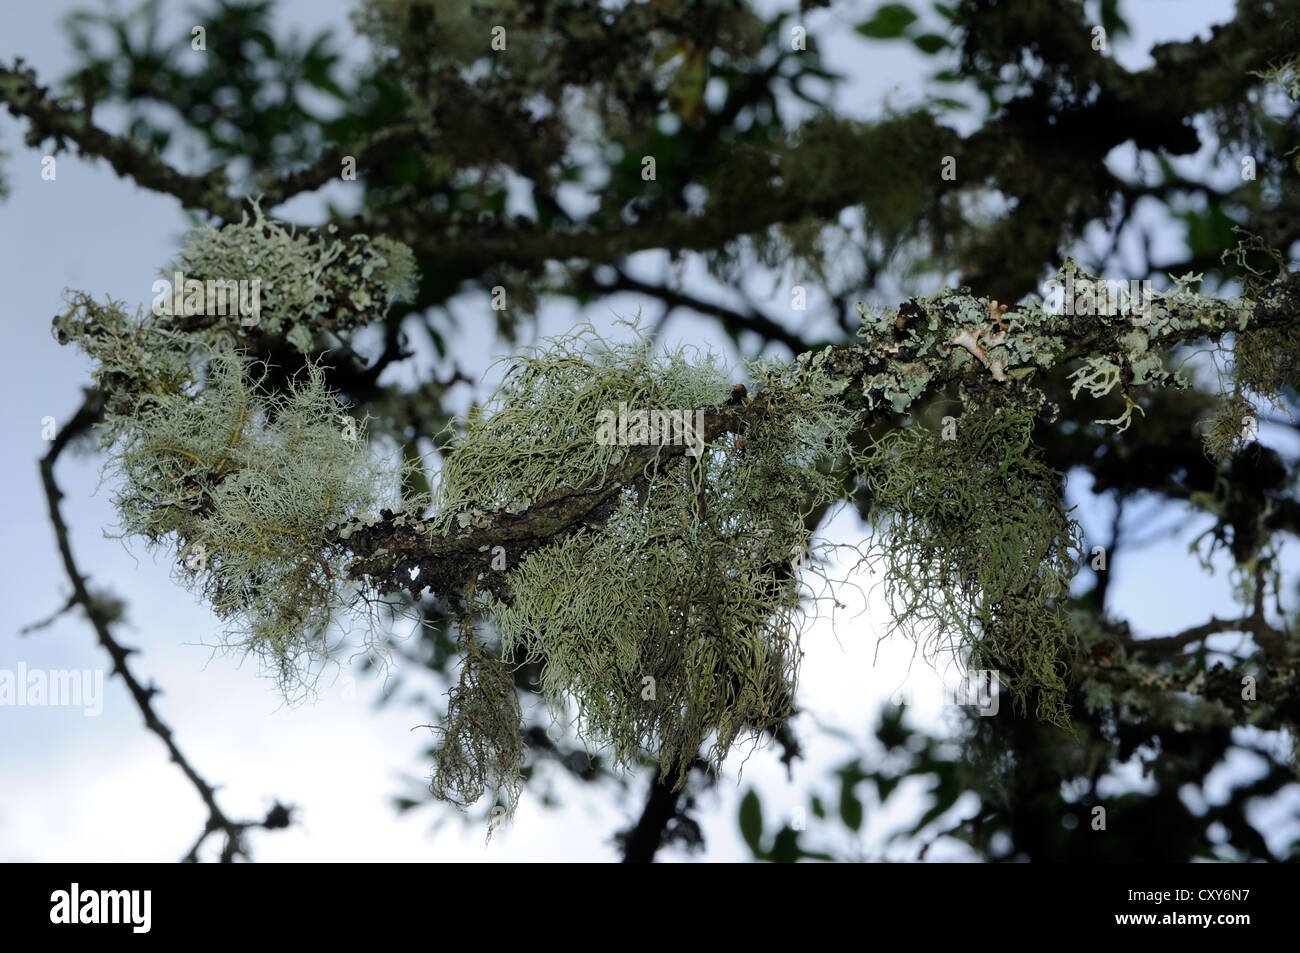 A variety of lichens growing on tree twigs. Calgary, Isle of Mull, Argyll and Bute, Scotland,  UK. - Stock Image